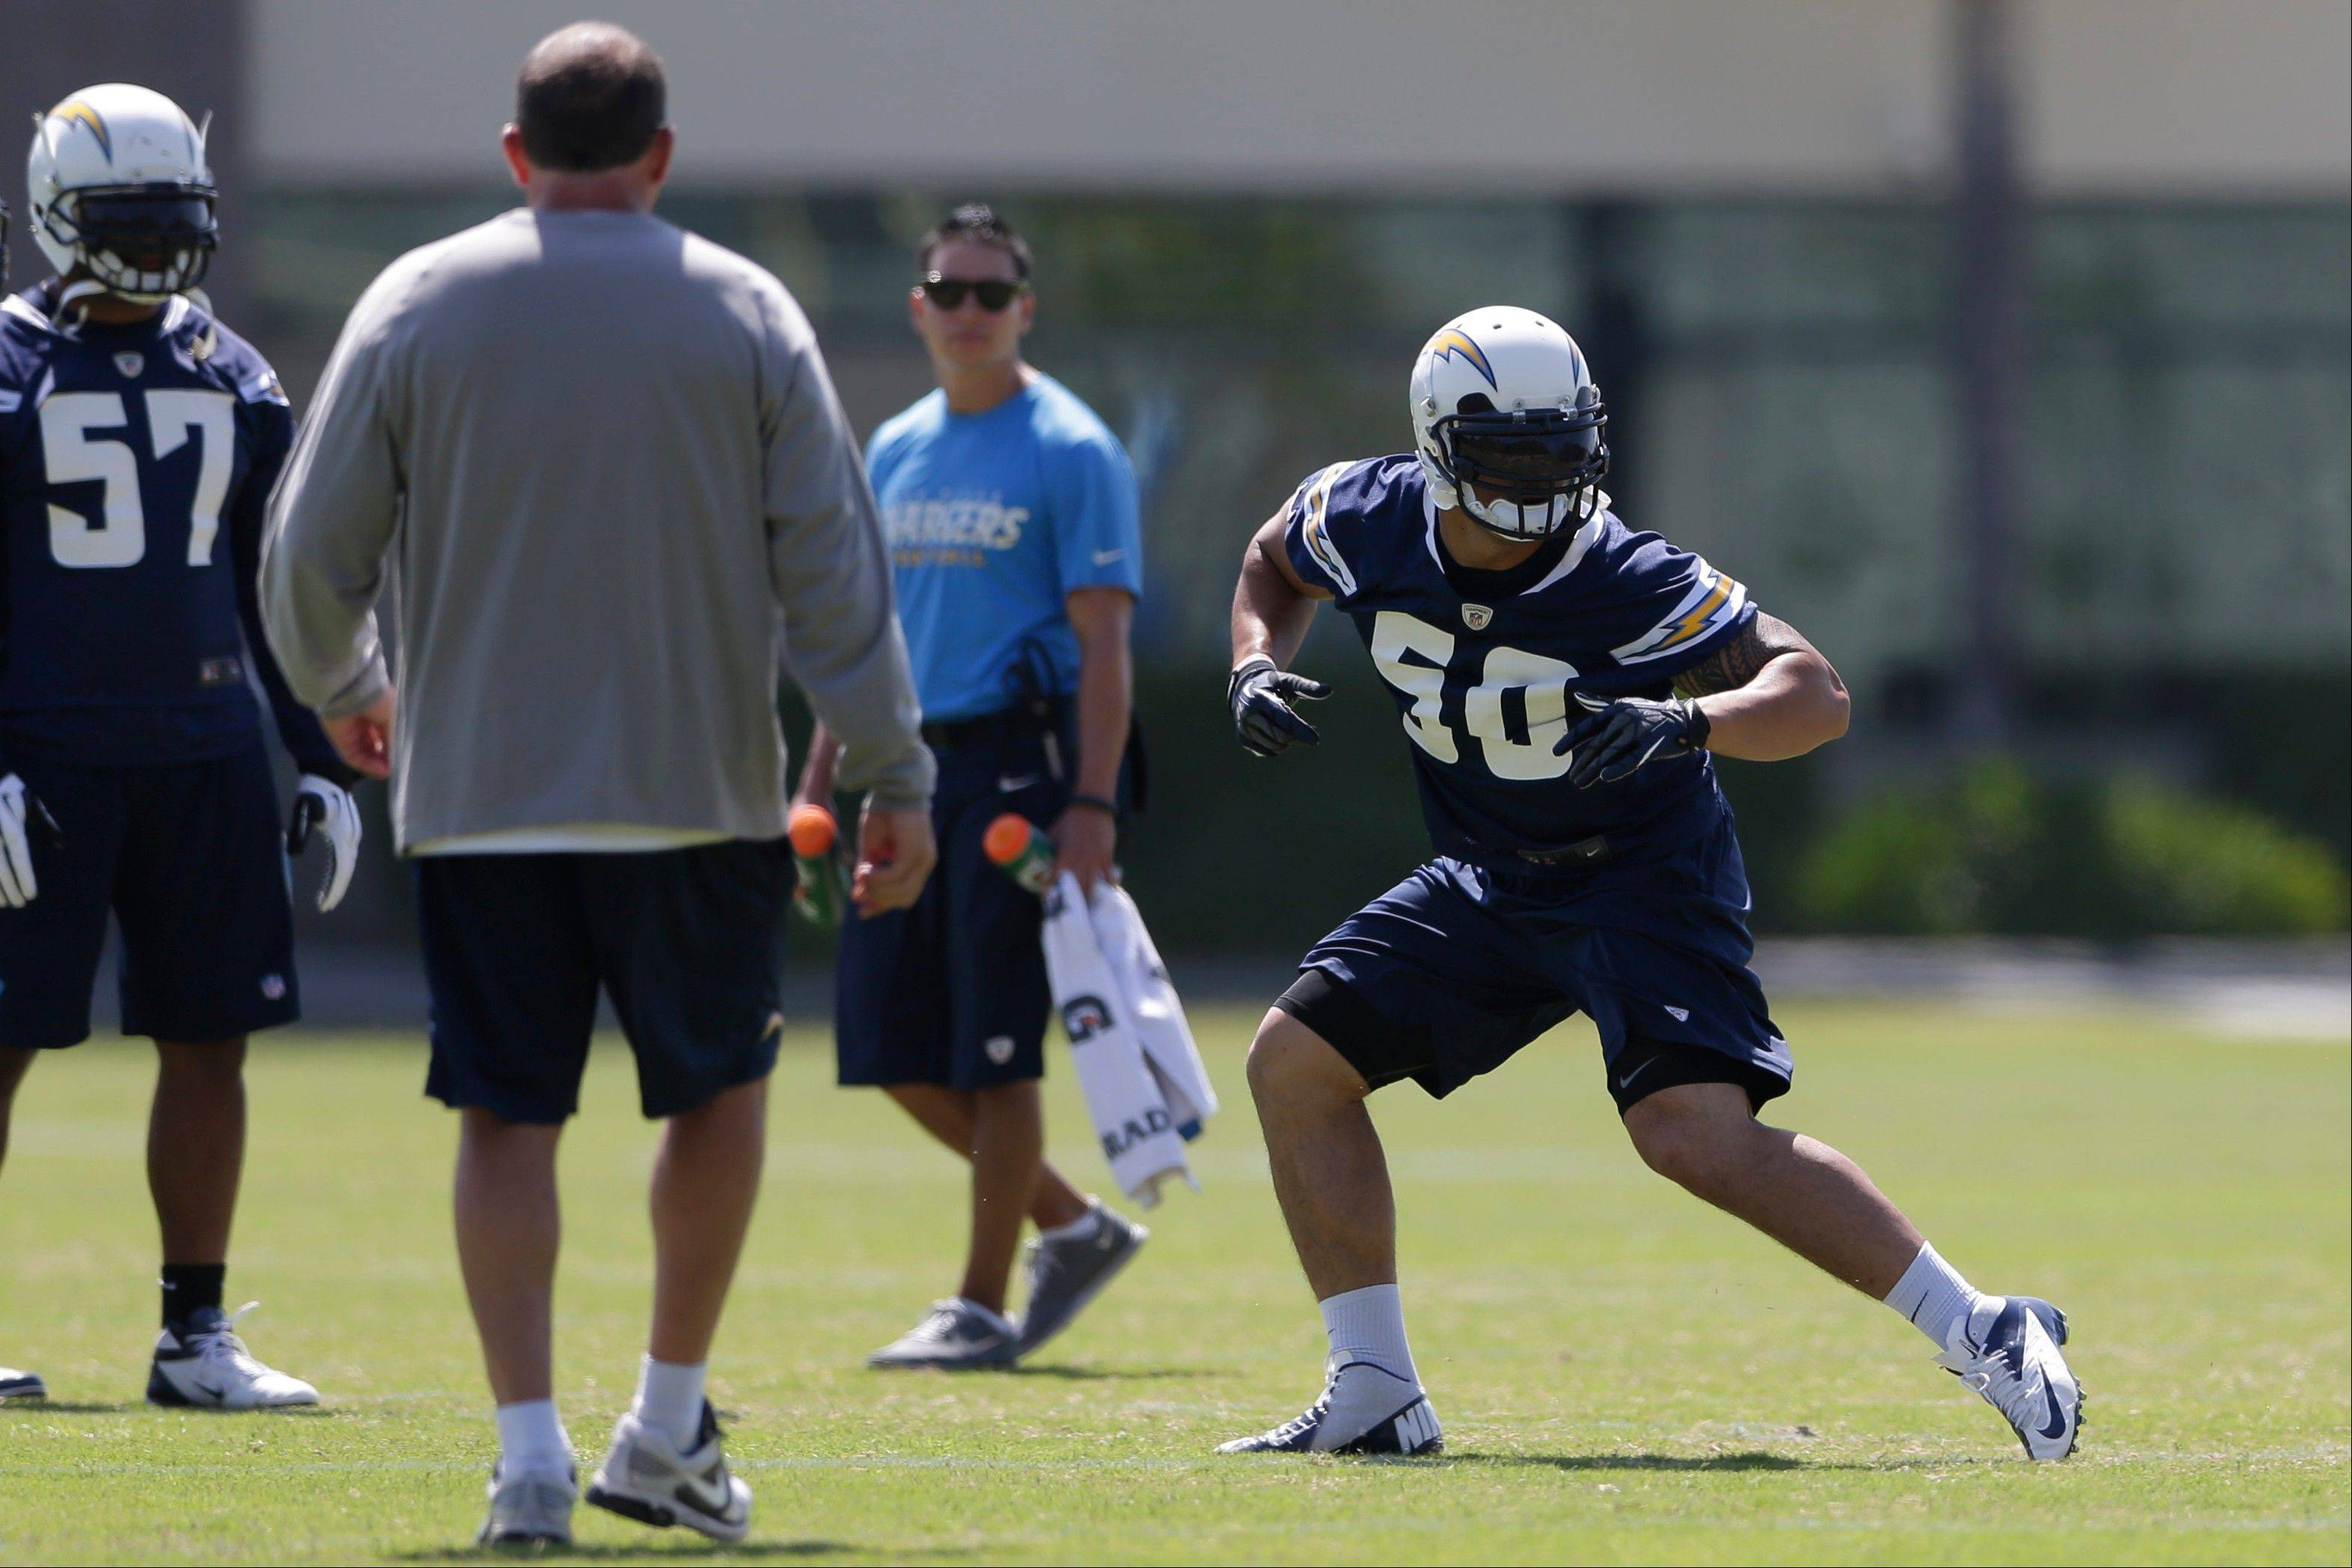 San Diego Chargers rookie linebacker Manti Te�o, right, runs a drill during Chargers training camp Monday, May 20, 2013, in San Diego.